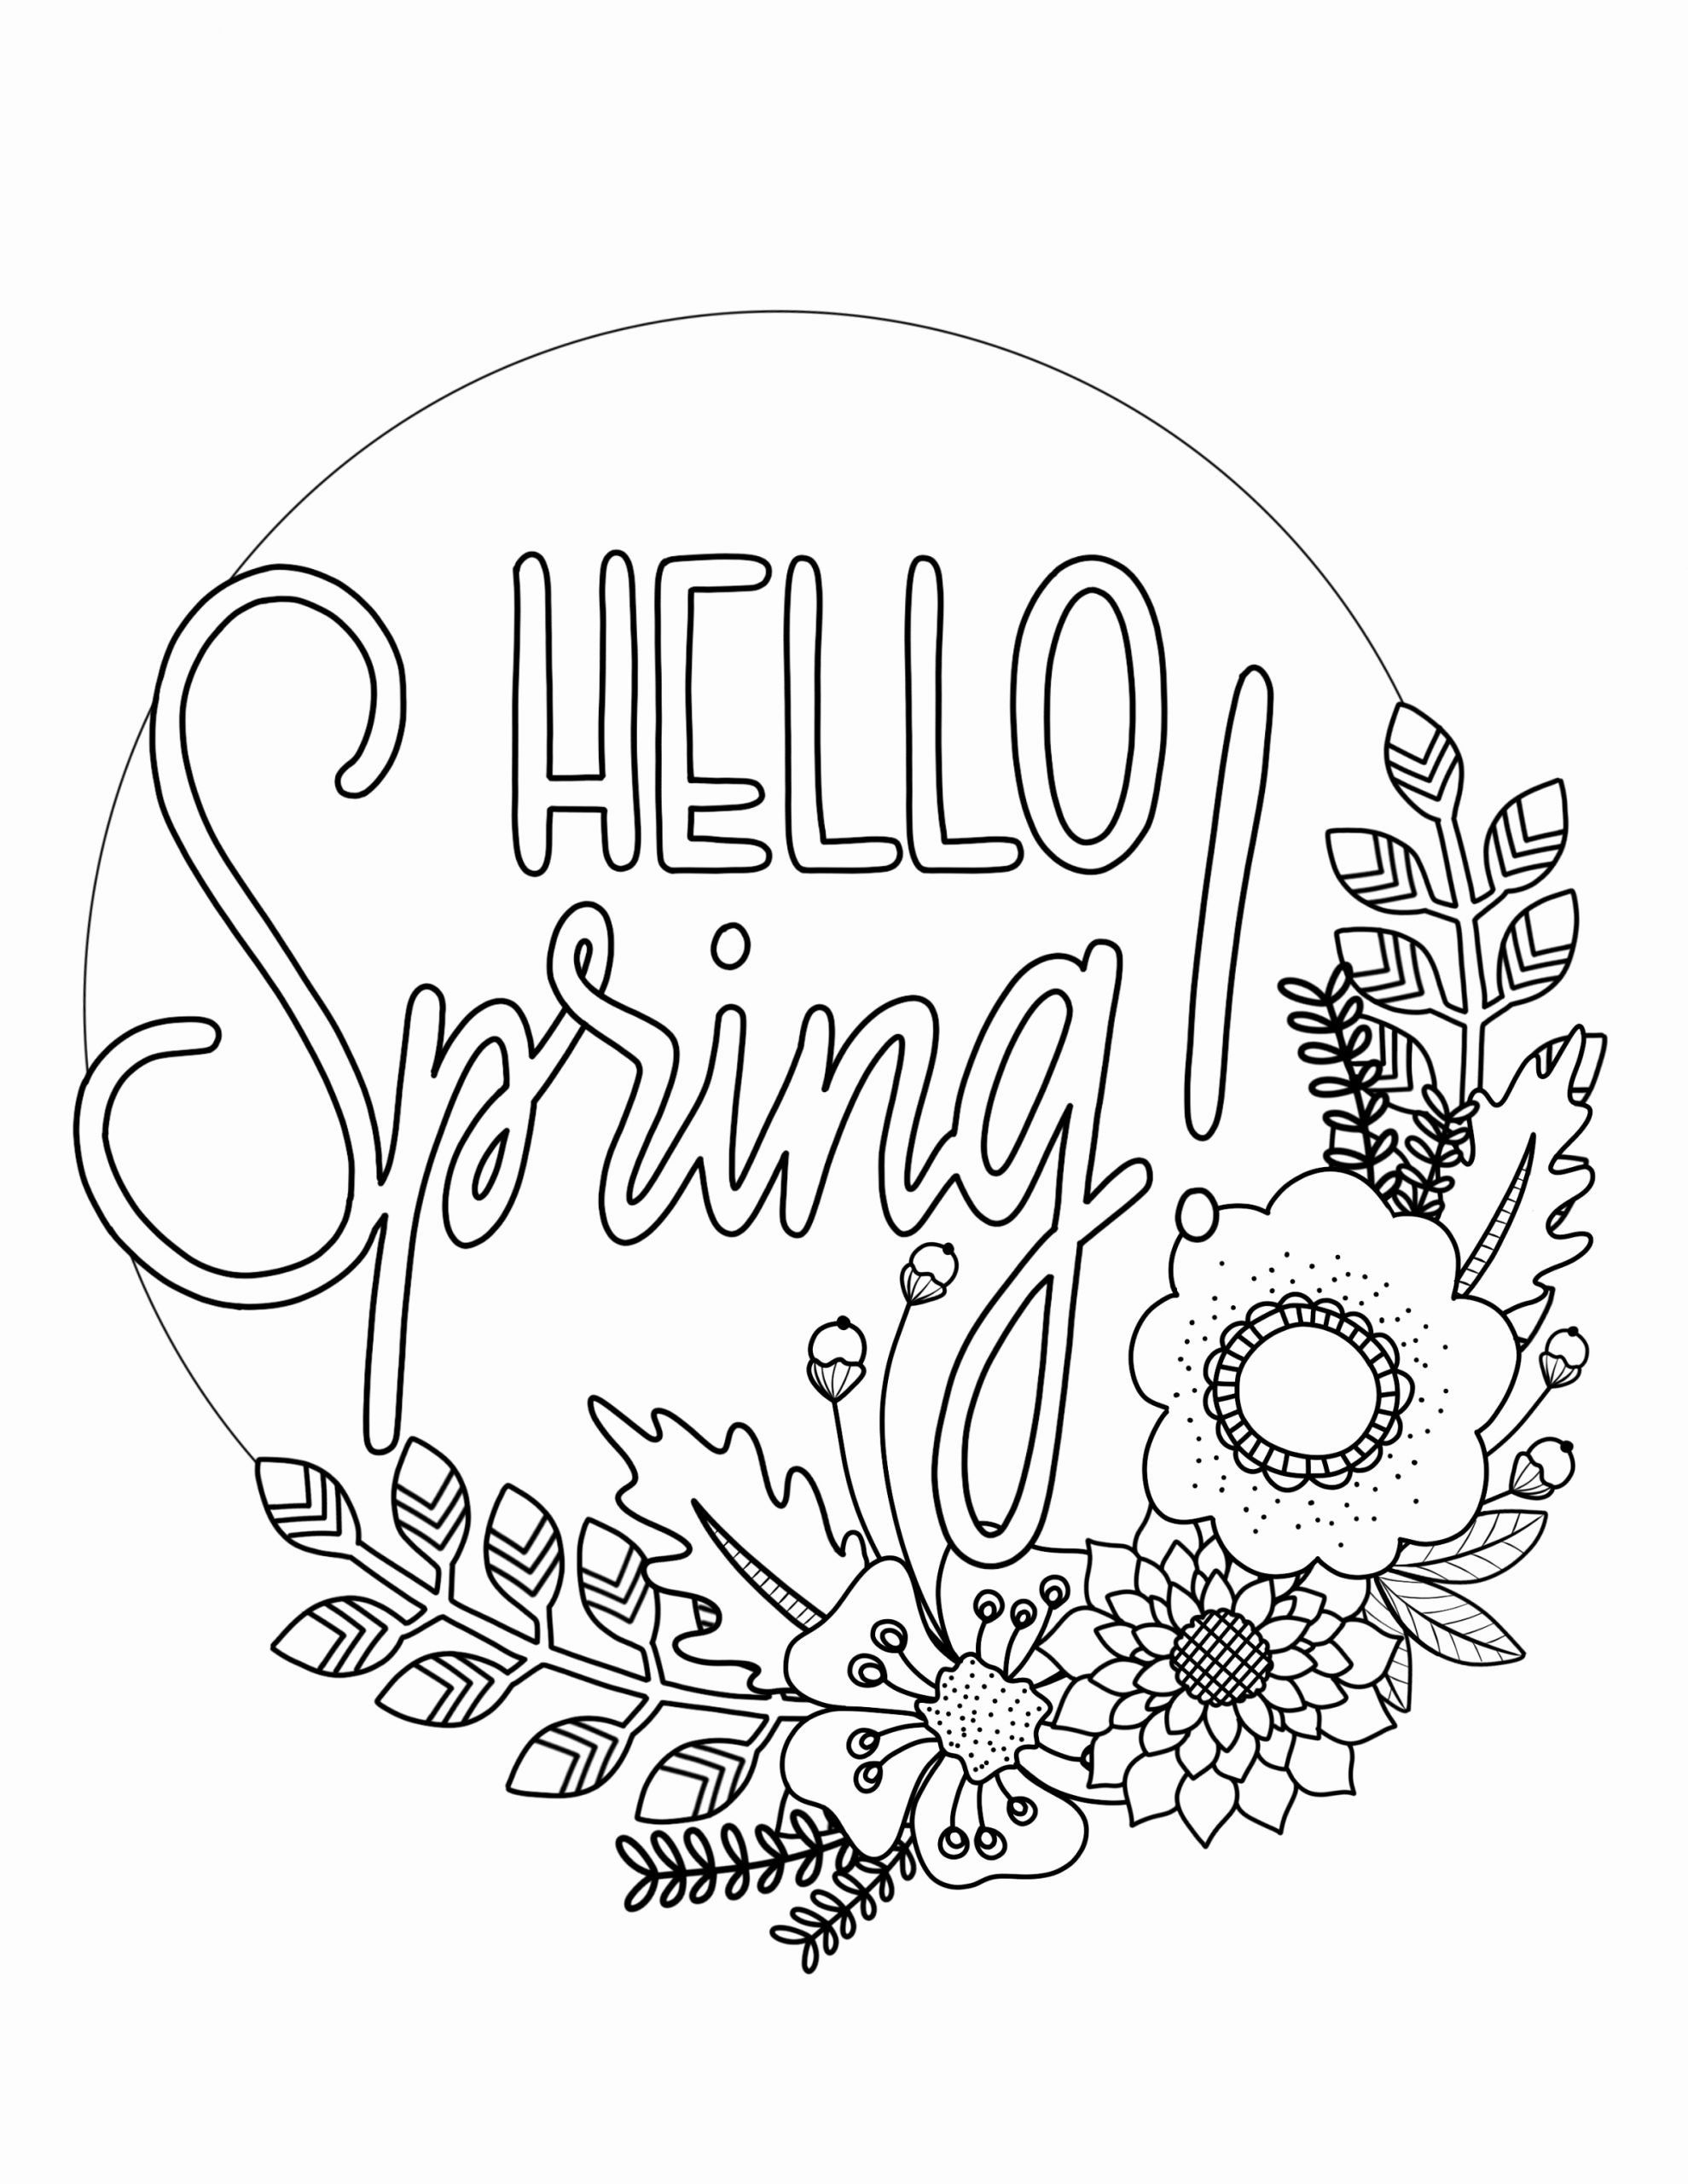 Kids Spring Coloring Pages New Printable Spring Coloring Page Over The Big Moon Spring Coloring Sheets Spring Coloring Pages Easter Coloring Pages